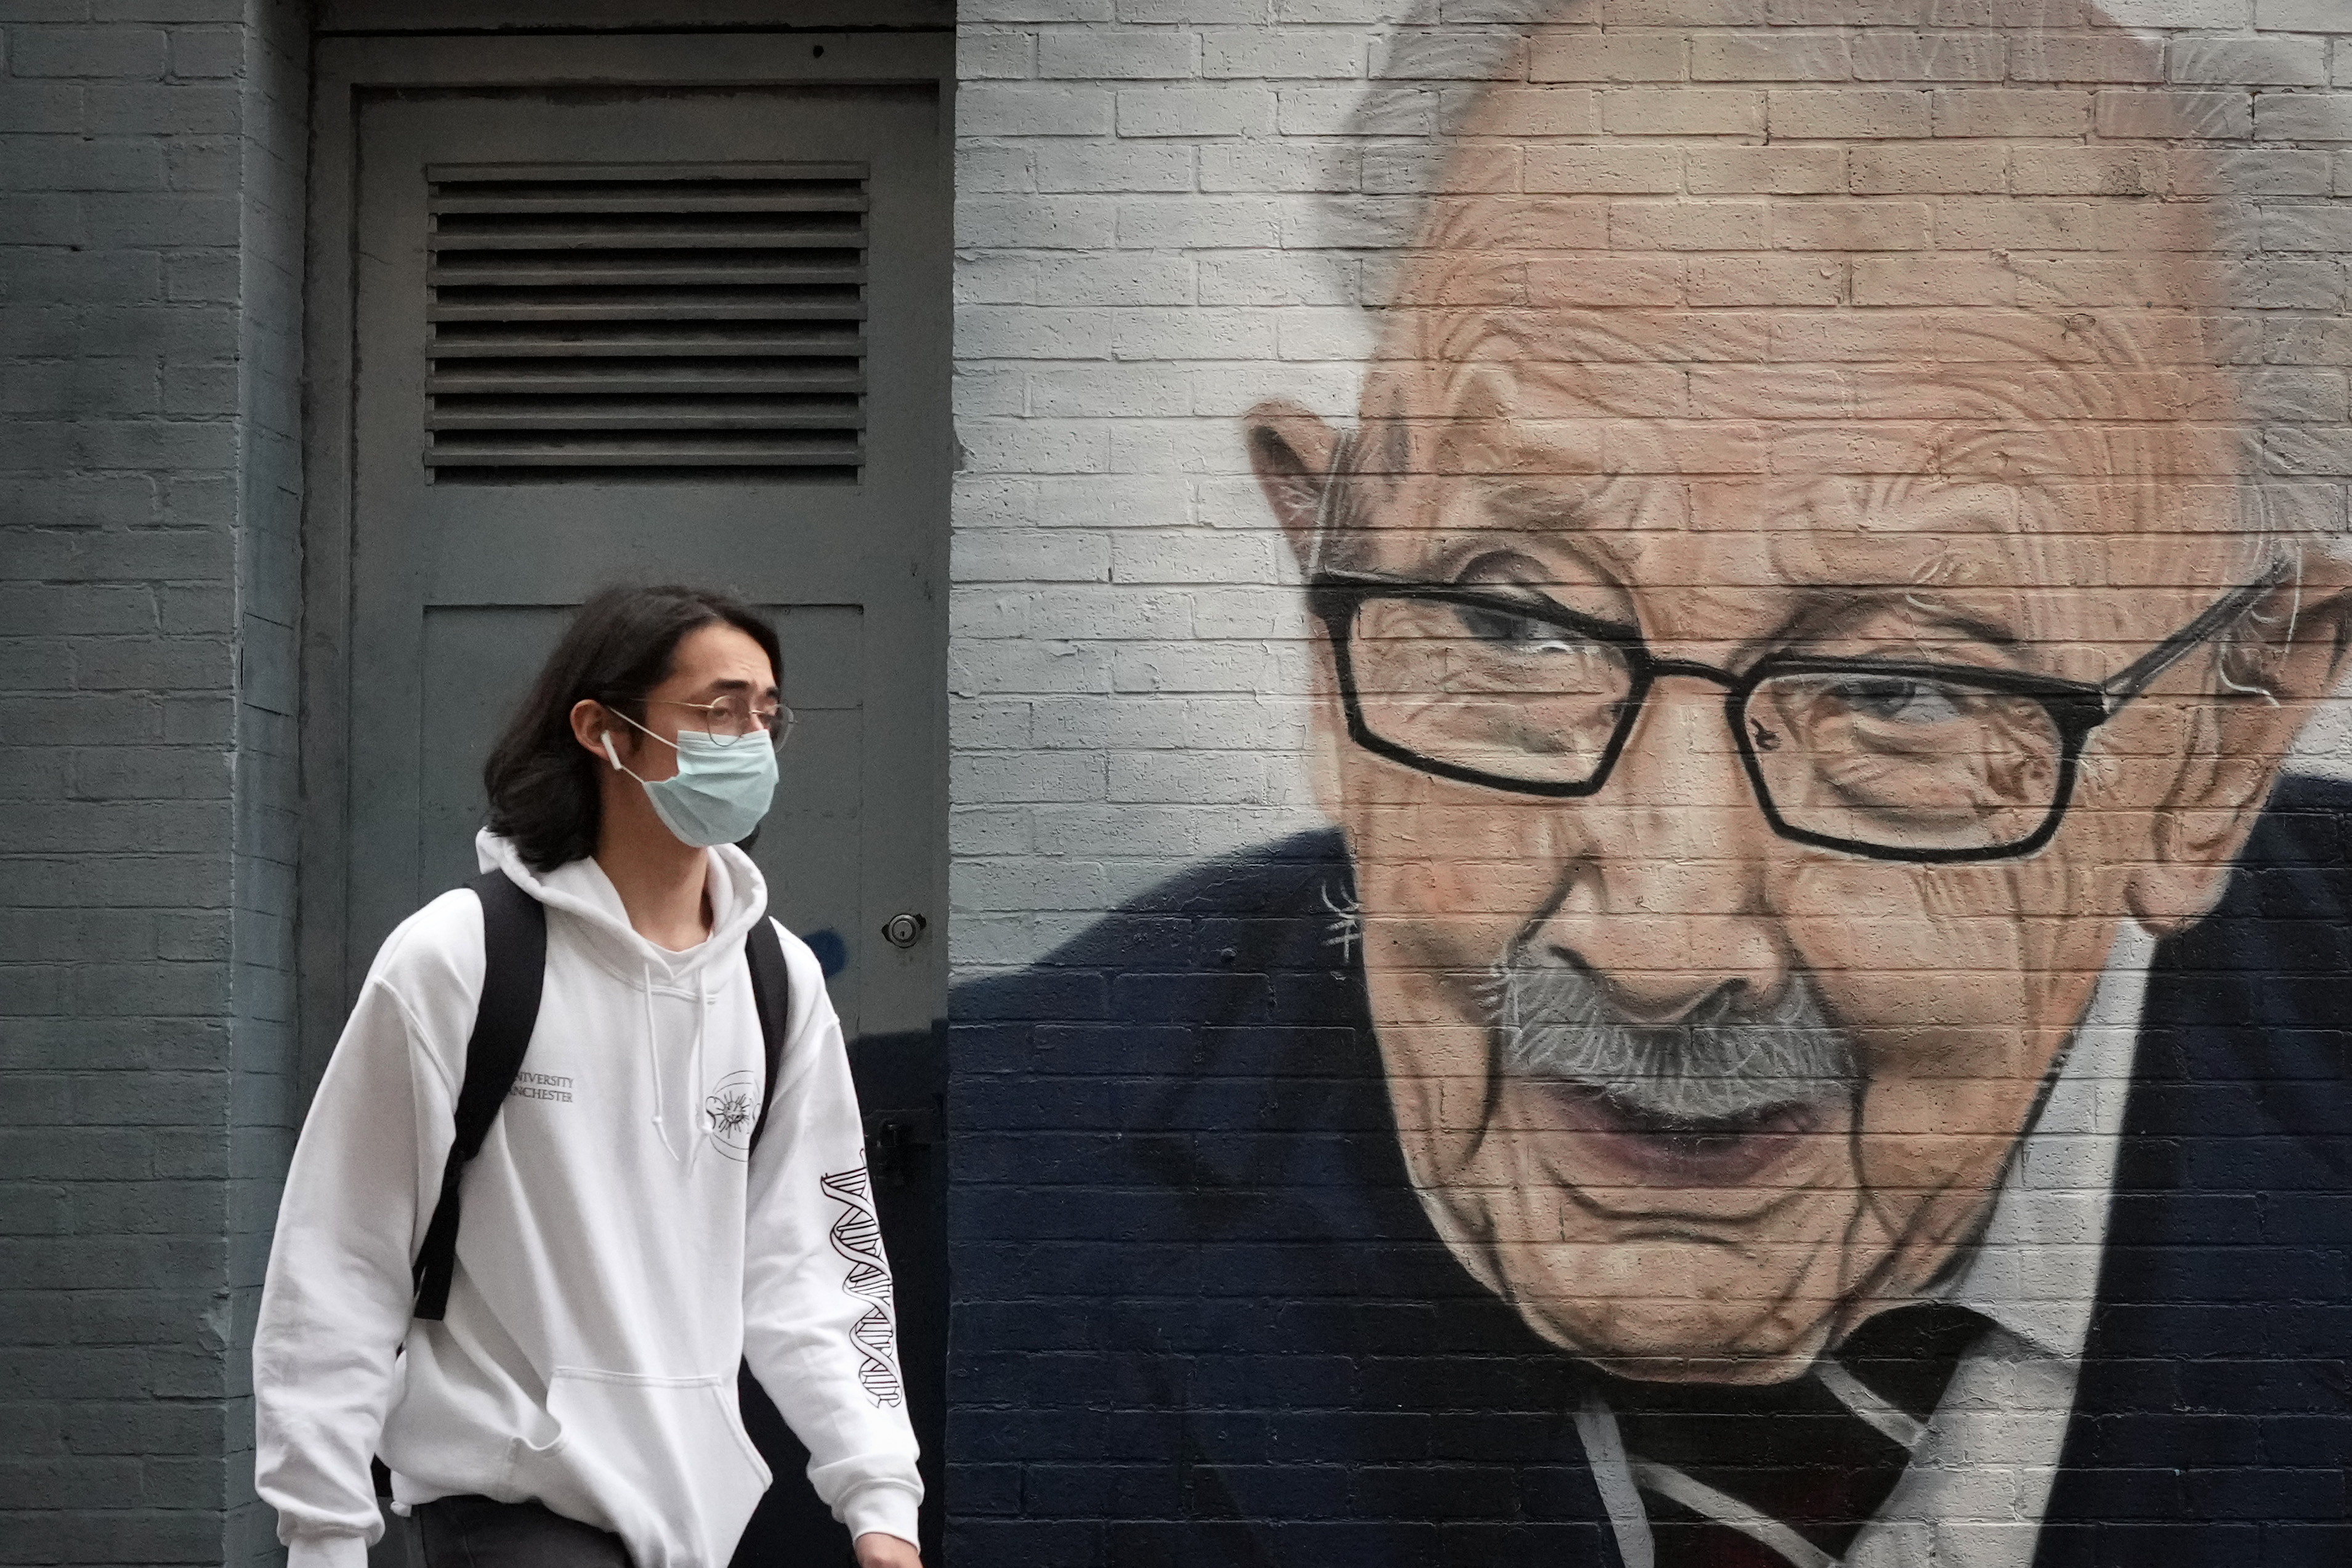 <p>MANCHESTER, ENGLAND - SEPTEMBER 13: A member of the public wears a pandemic face mask as he walks past a mural of Captain Tom Moore, ahead of the prime minister announcing the government's Covid-19 winter strategy on September 13, 2021 in Manchester, England. Tomorrow, British Prime Minister Boris Johnson will set out his plan to manage Covid-19 through the winter, including what actions would need to be taken if the NHS hospital system were at risk of being overwhelmed. (Photo by Christopher Furlong/Getty Images)</p>